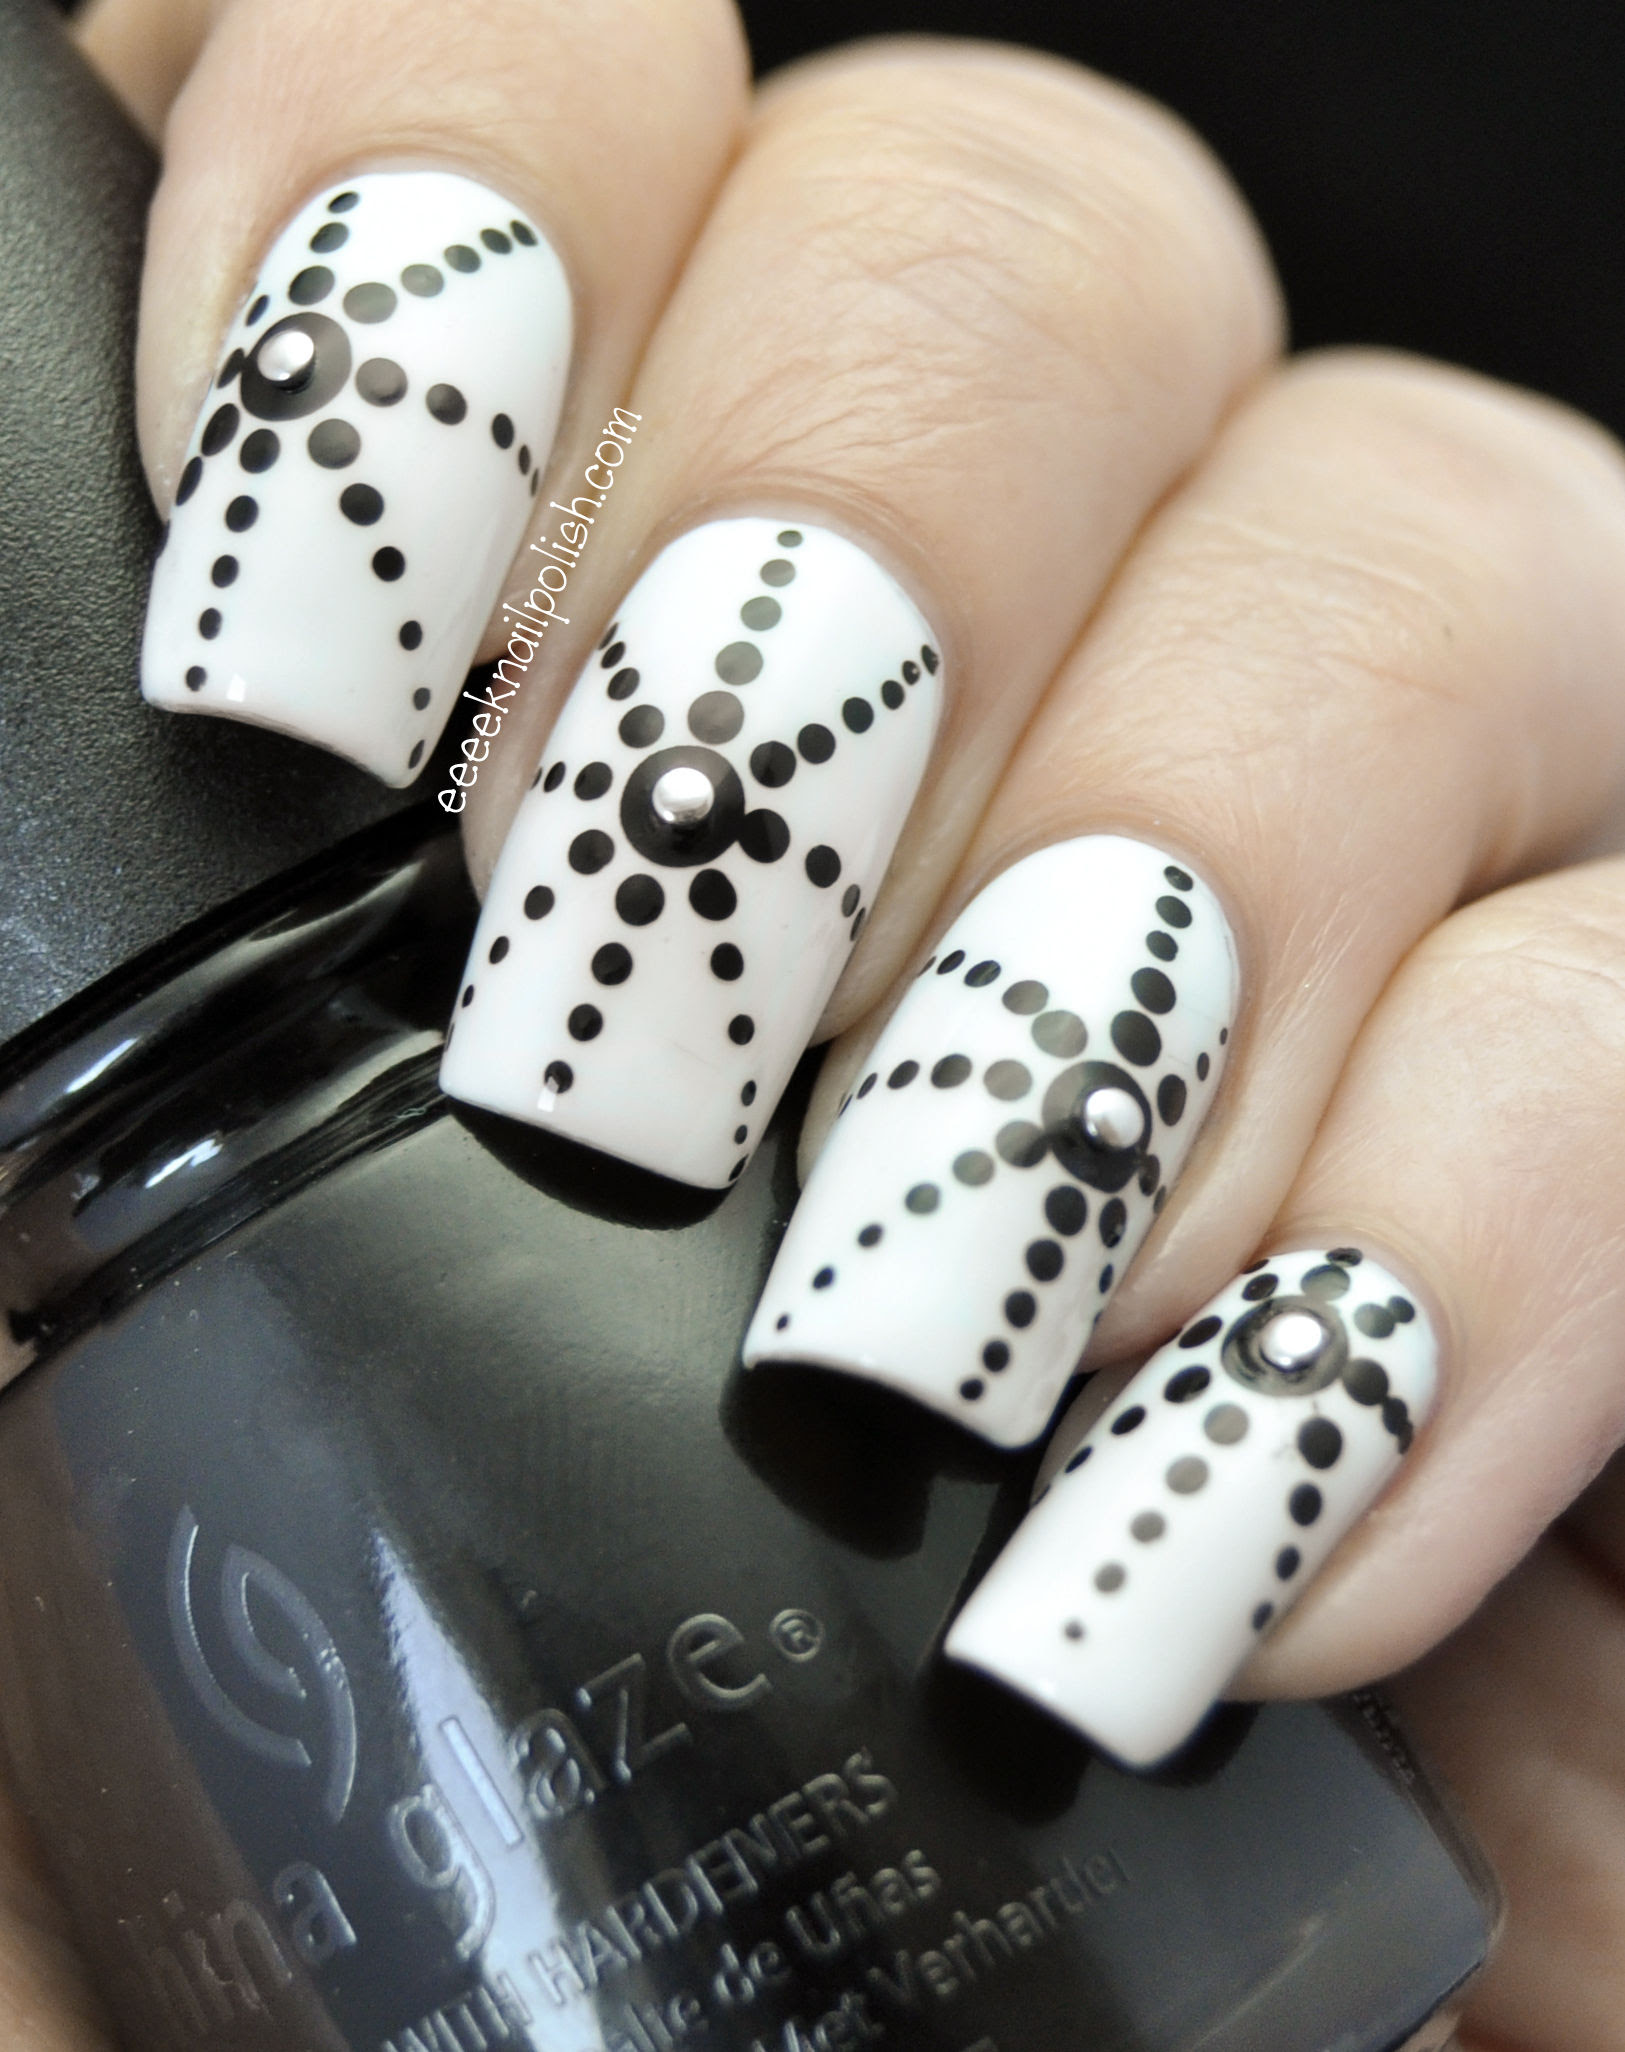 Black And White Nails Looking FANCY - Nail Art Design Ideas Collection